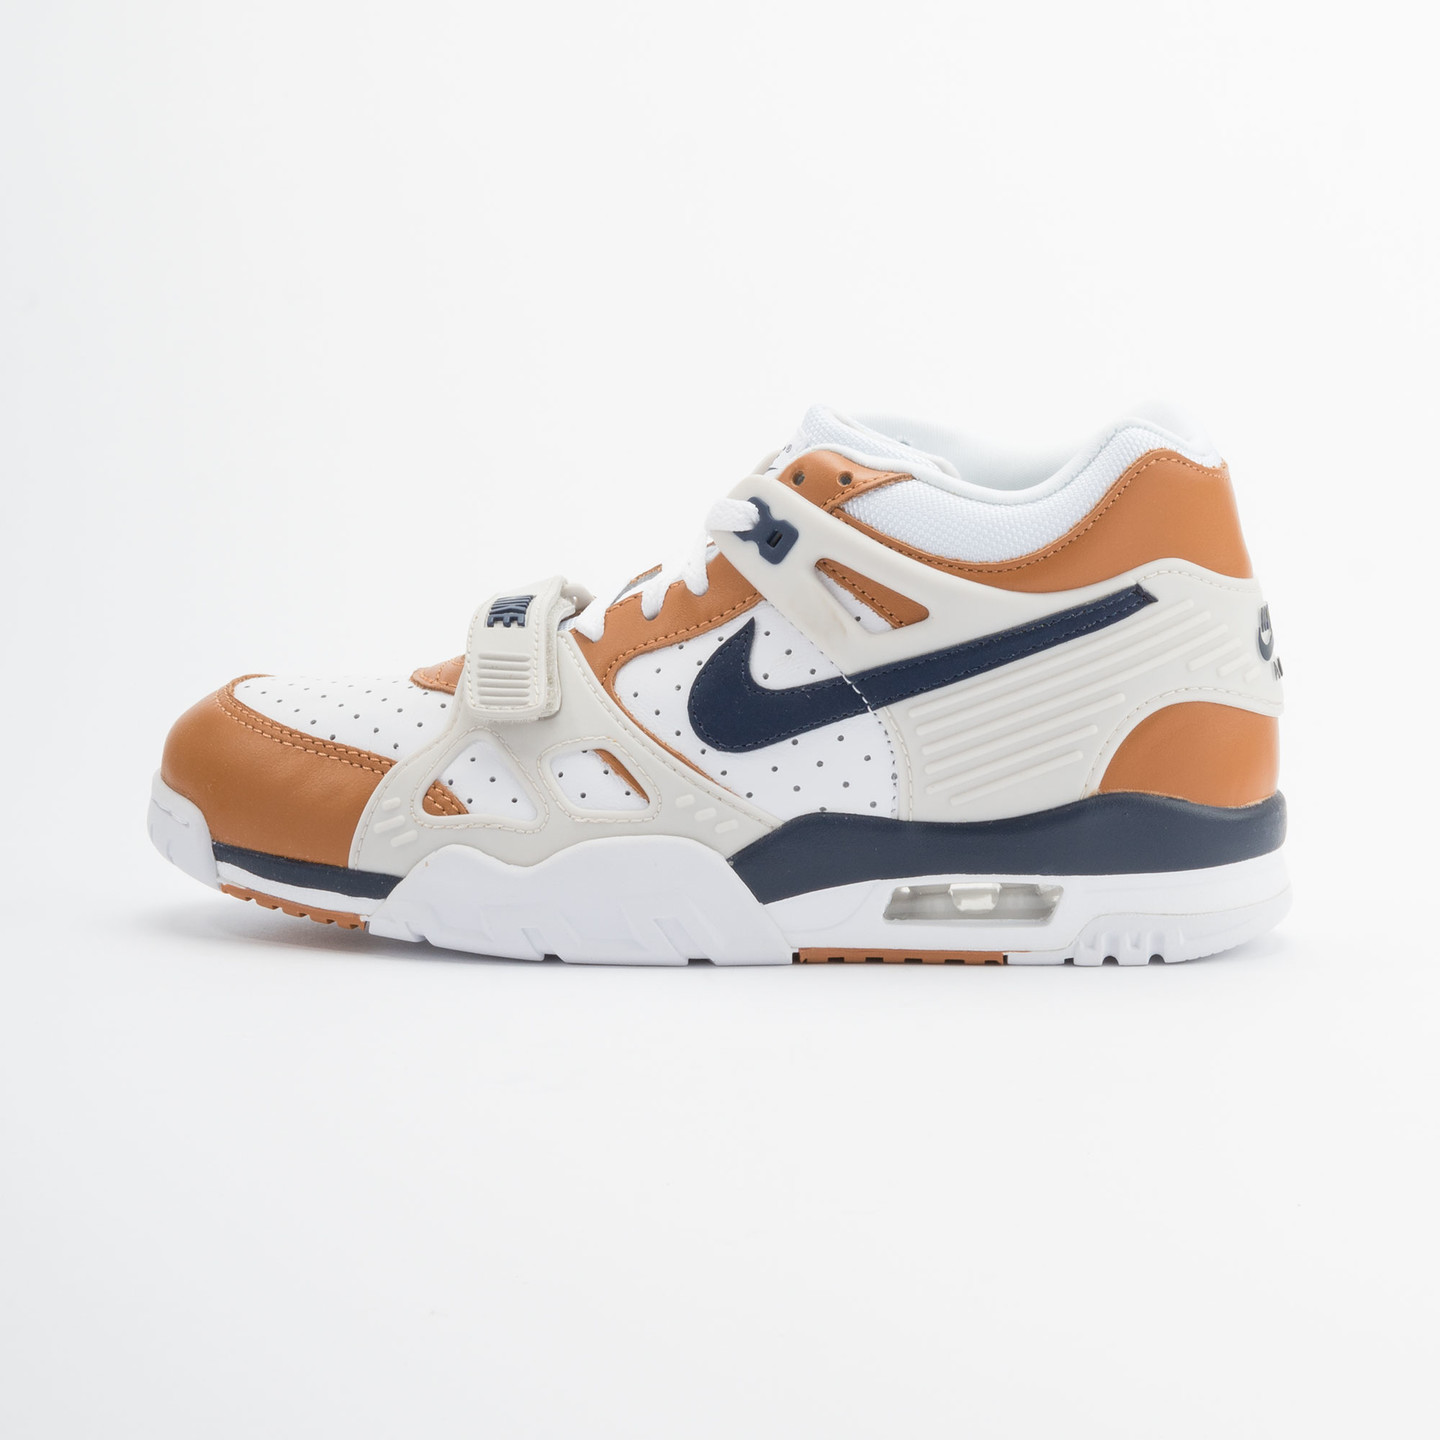 Nike Air Trainer 3 Premium Medicine Ball White/Mid Navy-Gngr-Lght Bn 705425-100-45